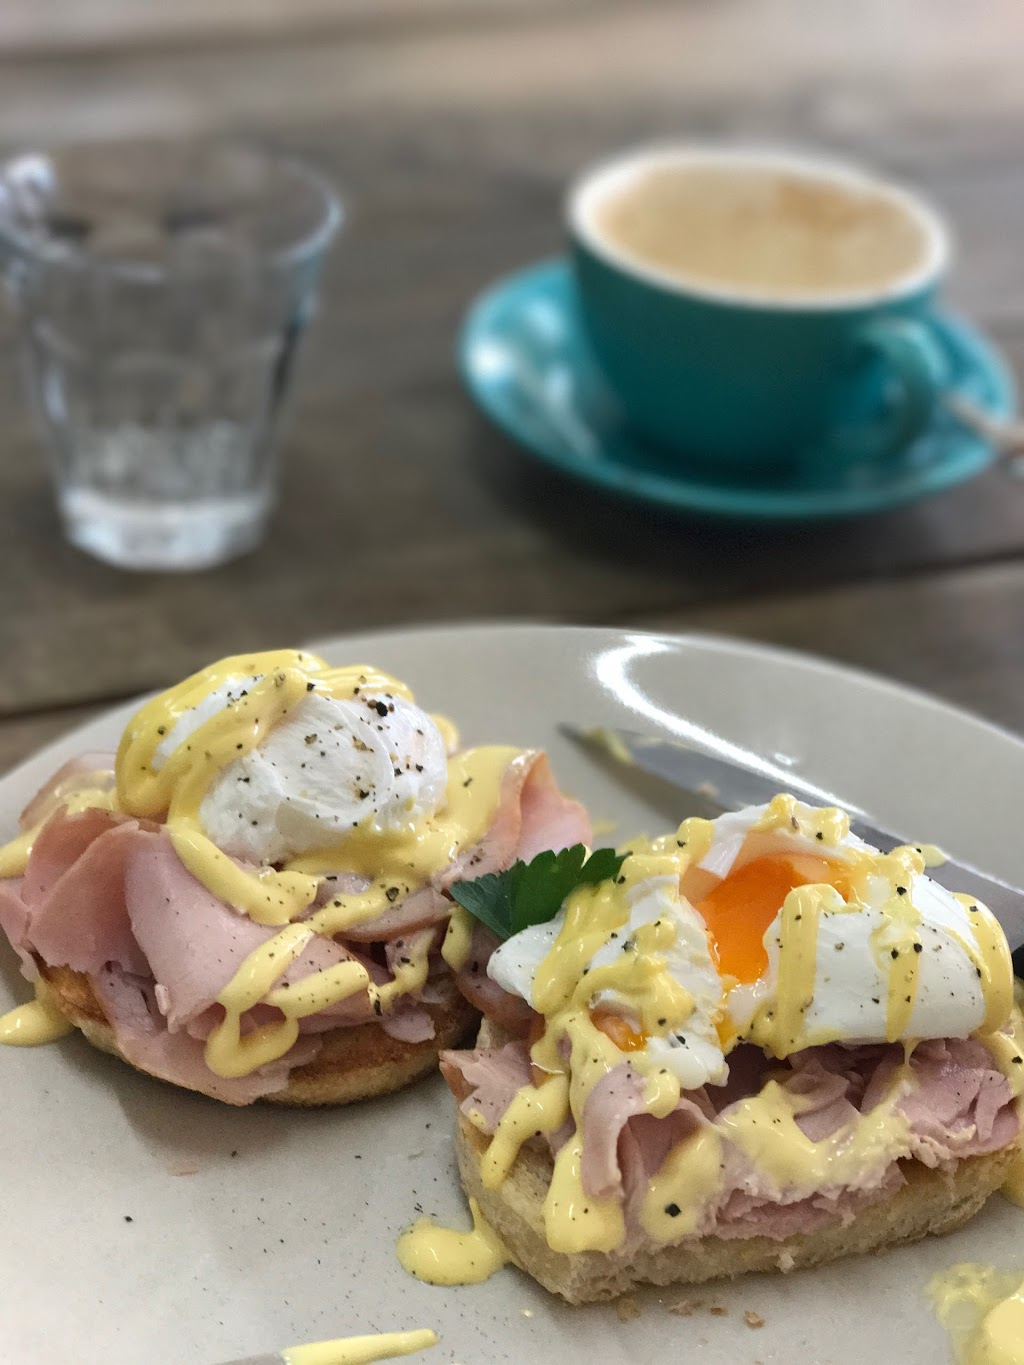 Feathers Cafe | cafe | 66 Cassilis St, Coonabarabran NSW 2357, Australia | 0268421141 OR +61 2 6842 1141